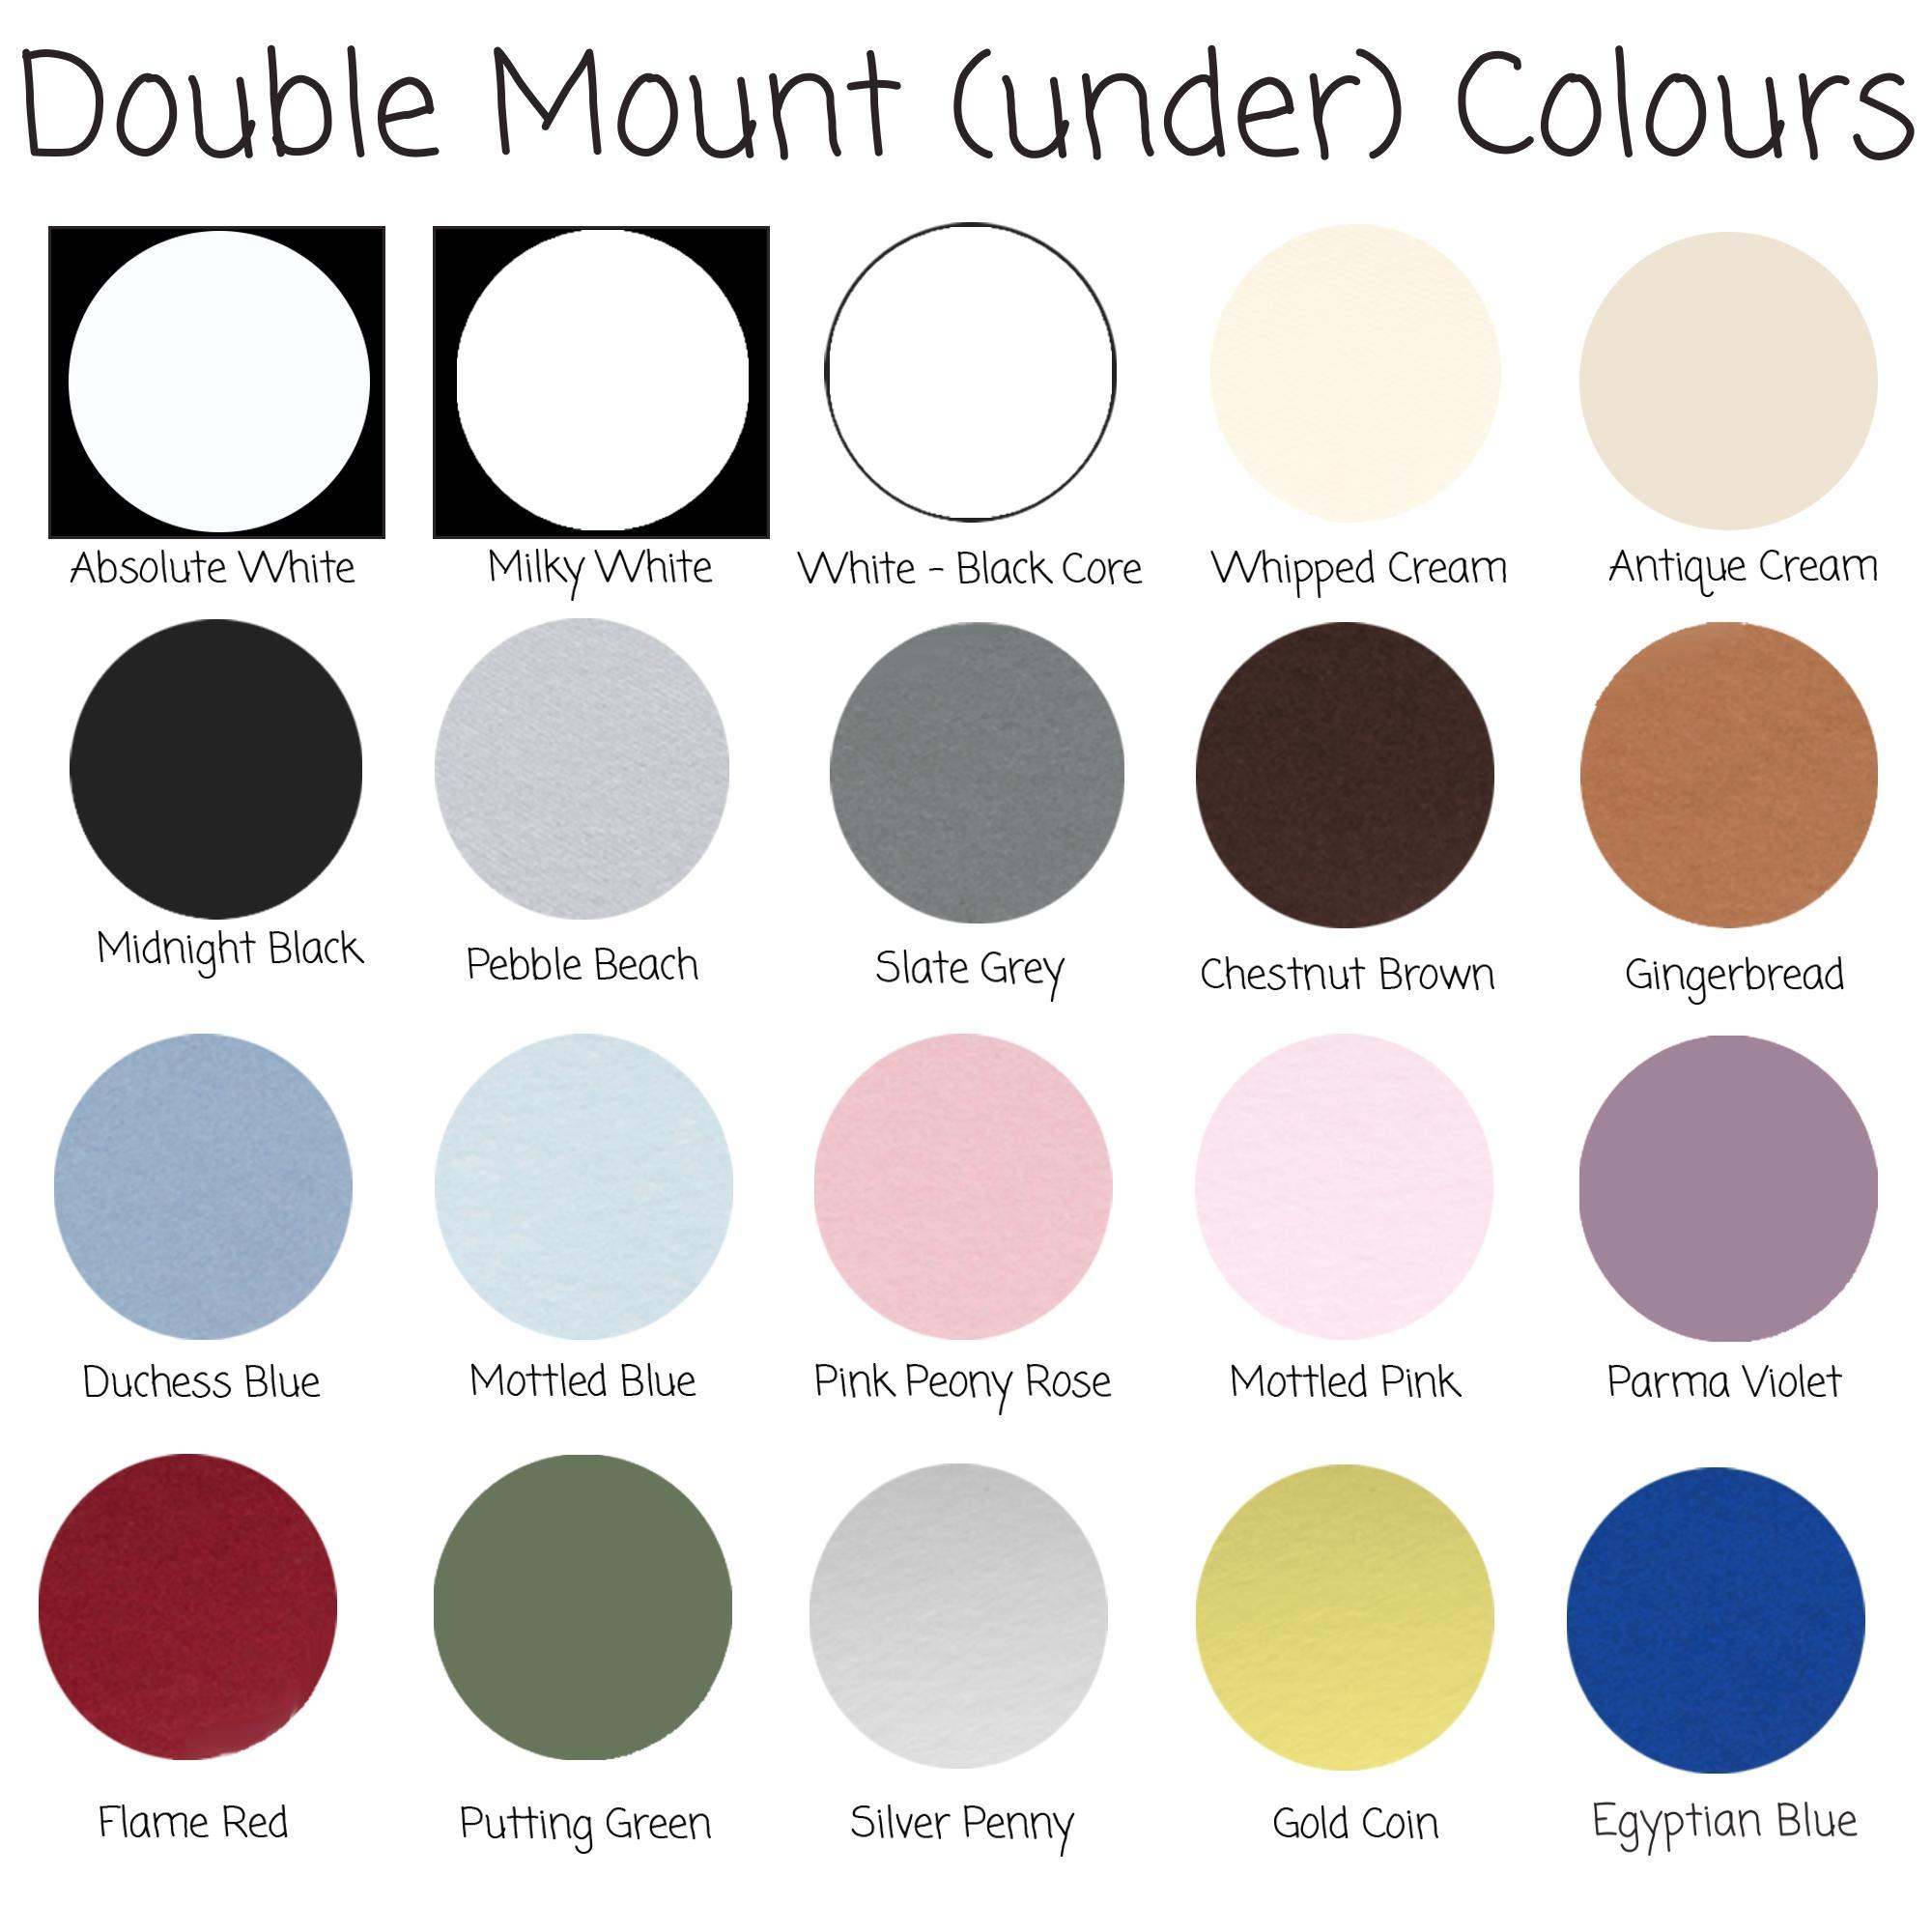 Double Mount Colours